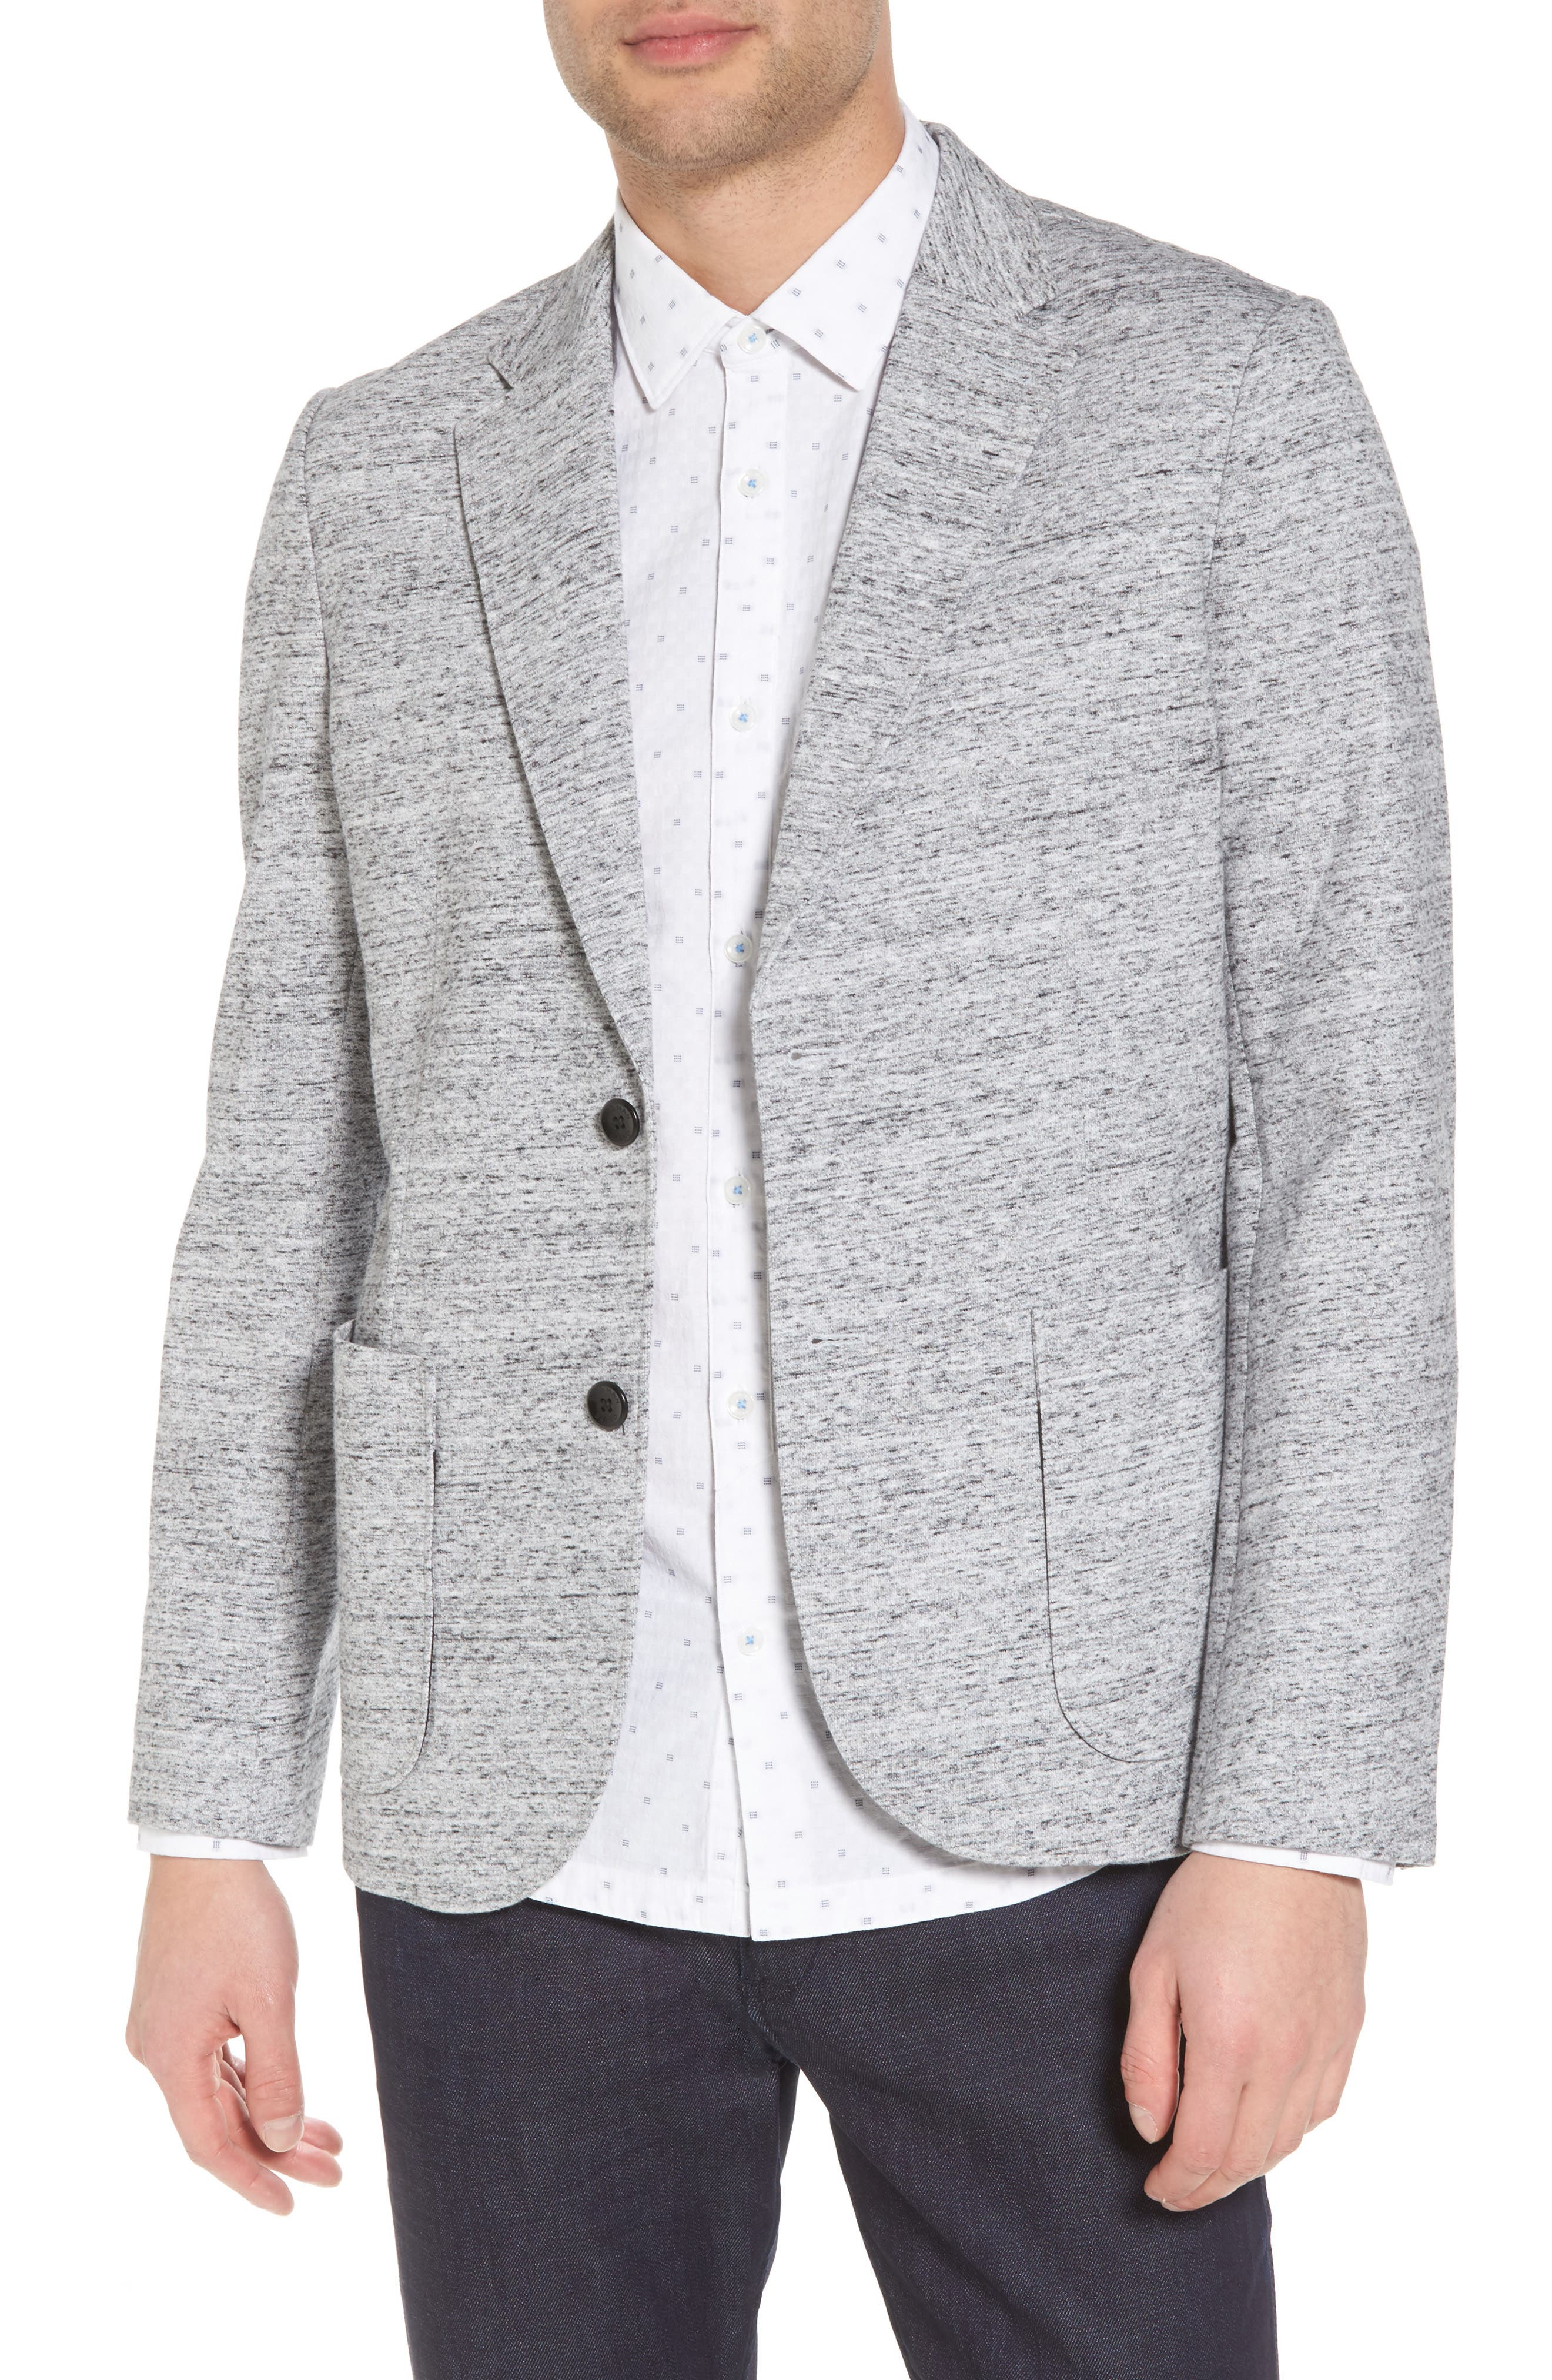 Soft Cotton Unconstructed Blazer,                         Main,                         color, Grey Heather / White